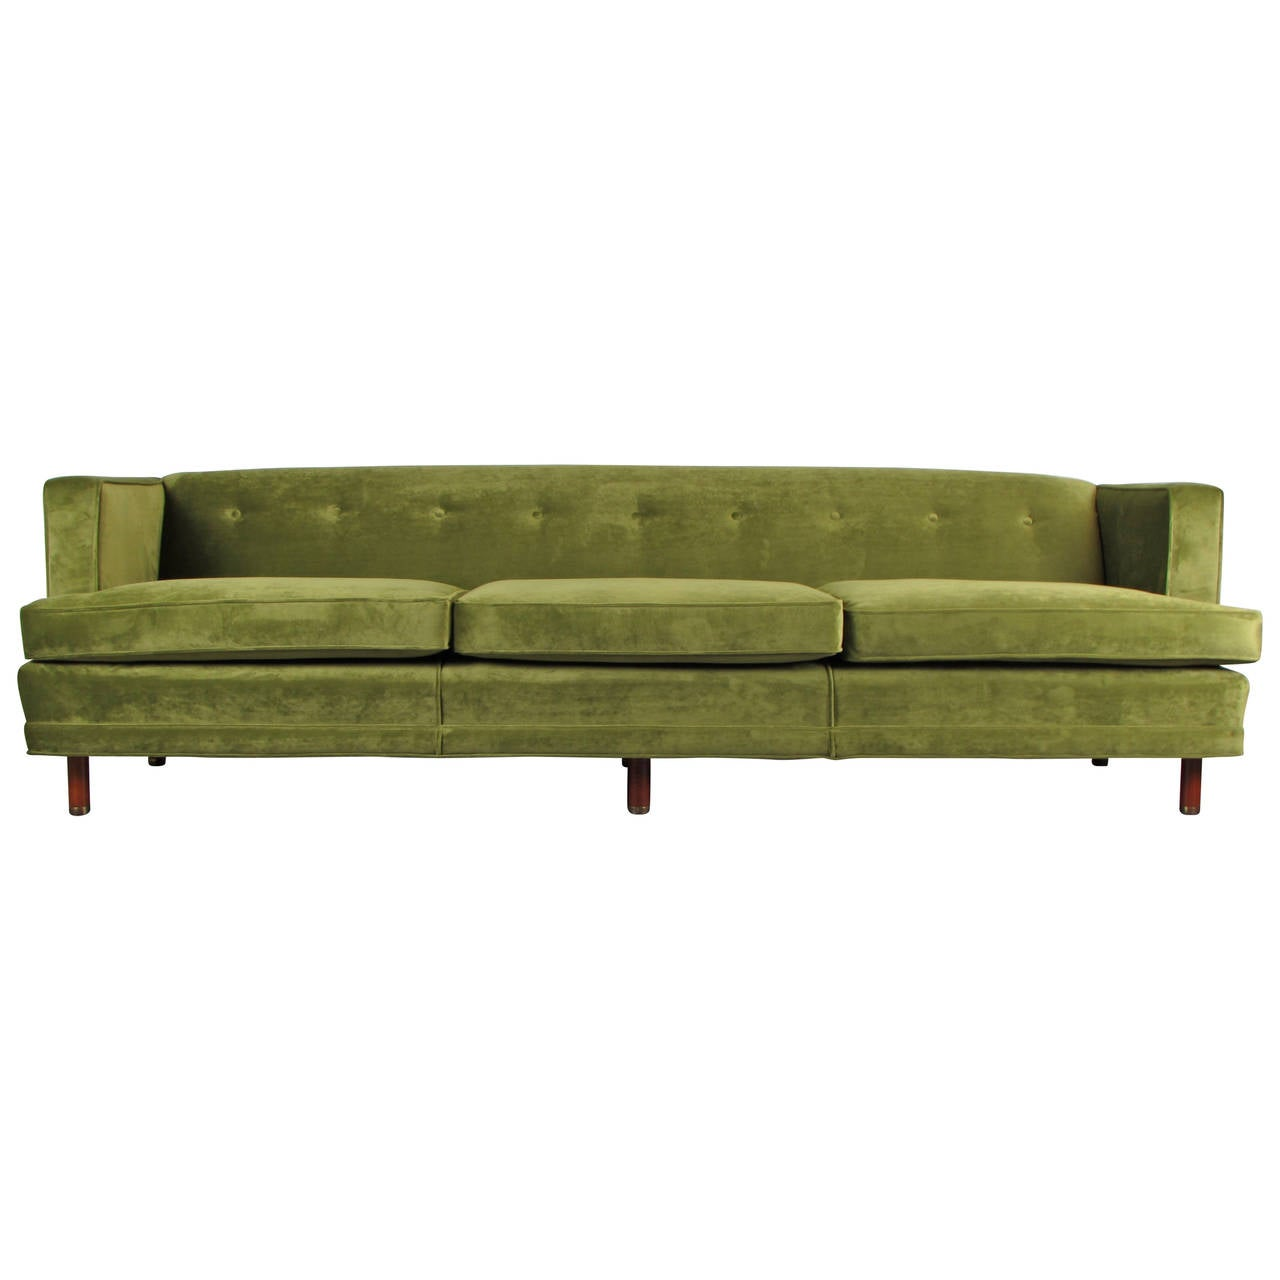 Exceptionnel Striking Velvet Tuxedo Sofa In The Style Of Edward Wormley, 1960s For Sale